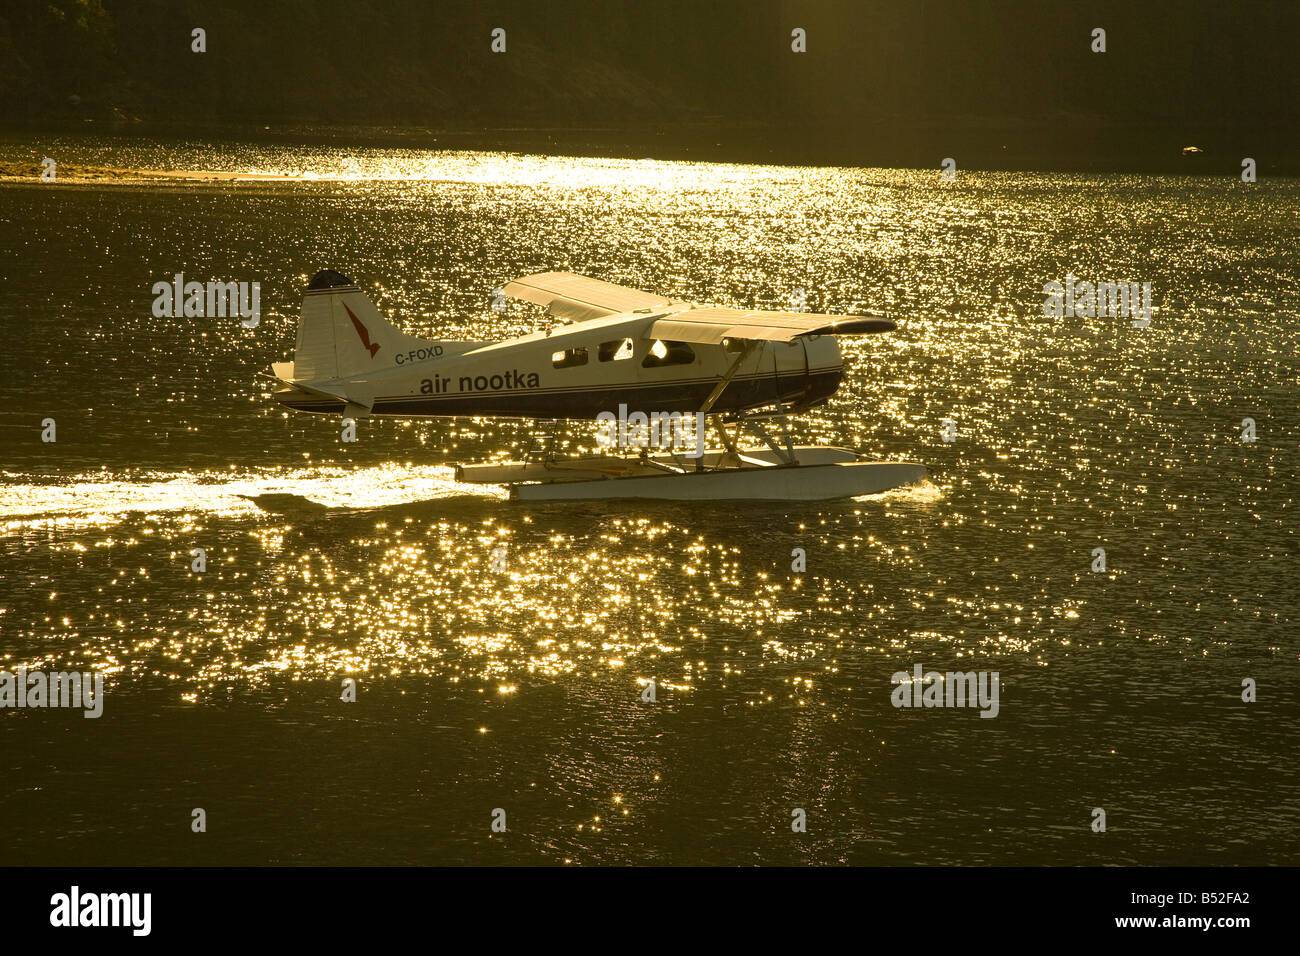 Nootka Air Gold River Vancouver Island British Columbia Canada - Stock Image